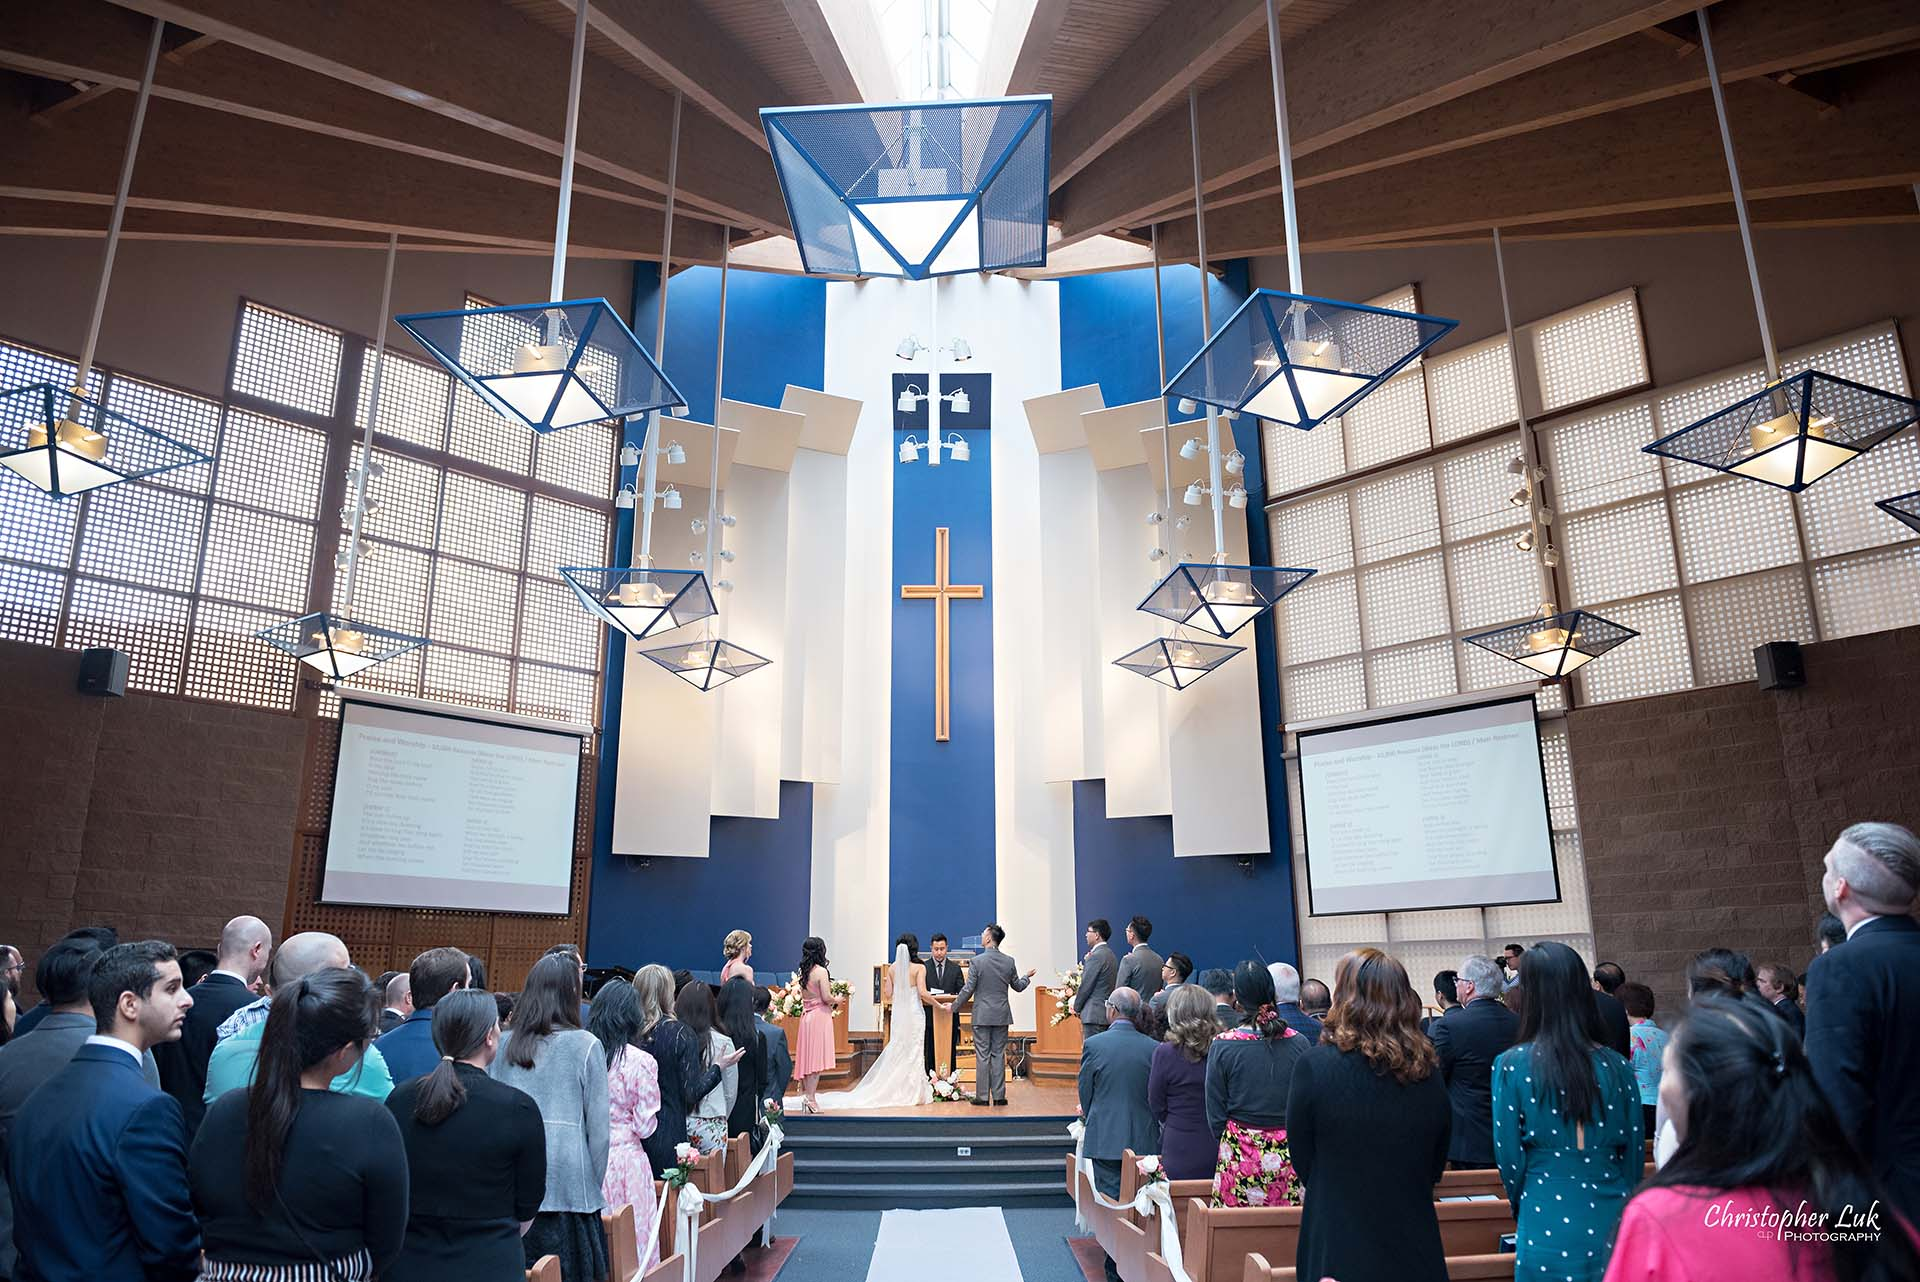 Christopher Luk Toronto Wedding Photographer Trinity York Mills Church Ceremony Sanctuary Candid Natural Photojournalistic Groom Bride Christian Worship Music Songs Landscape Wide